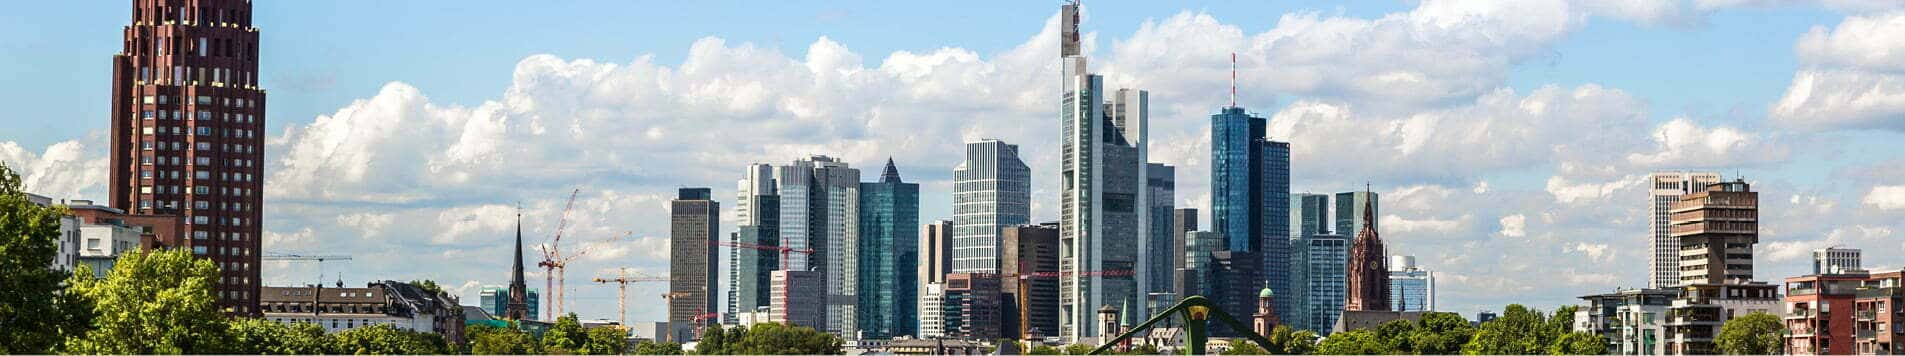 Investoren Meetings Frankfurt am Main